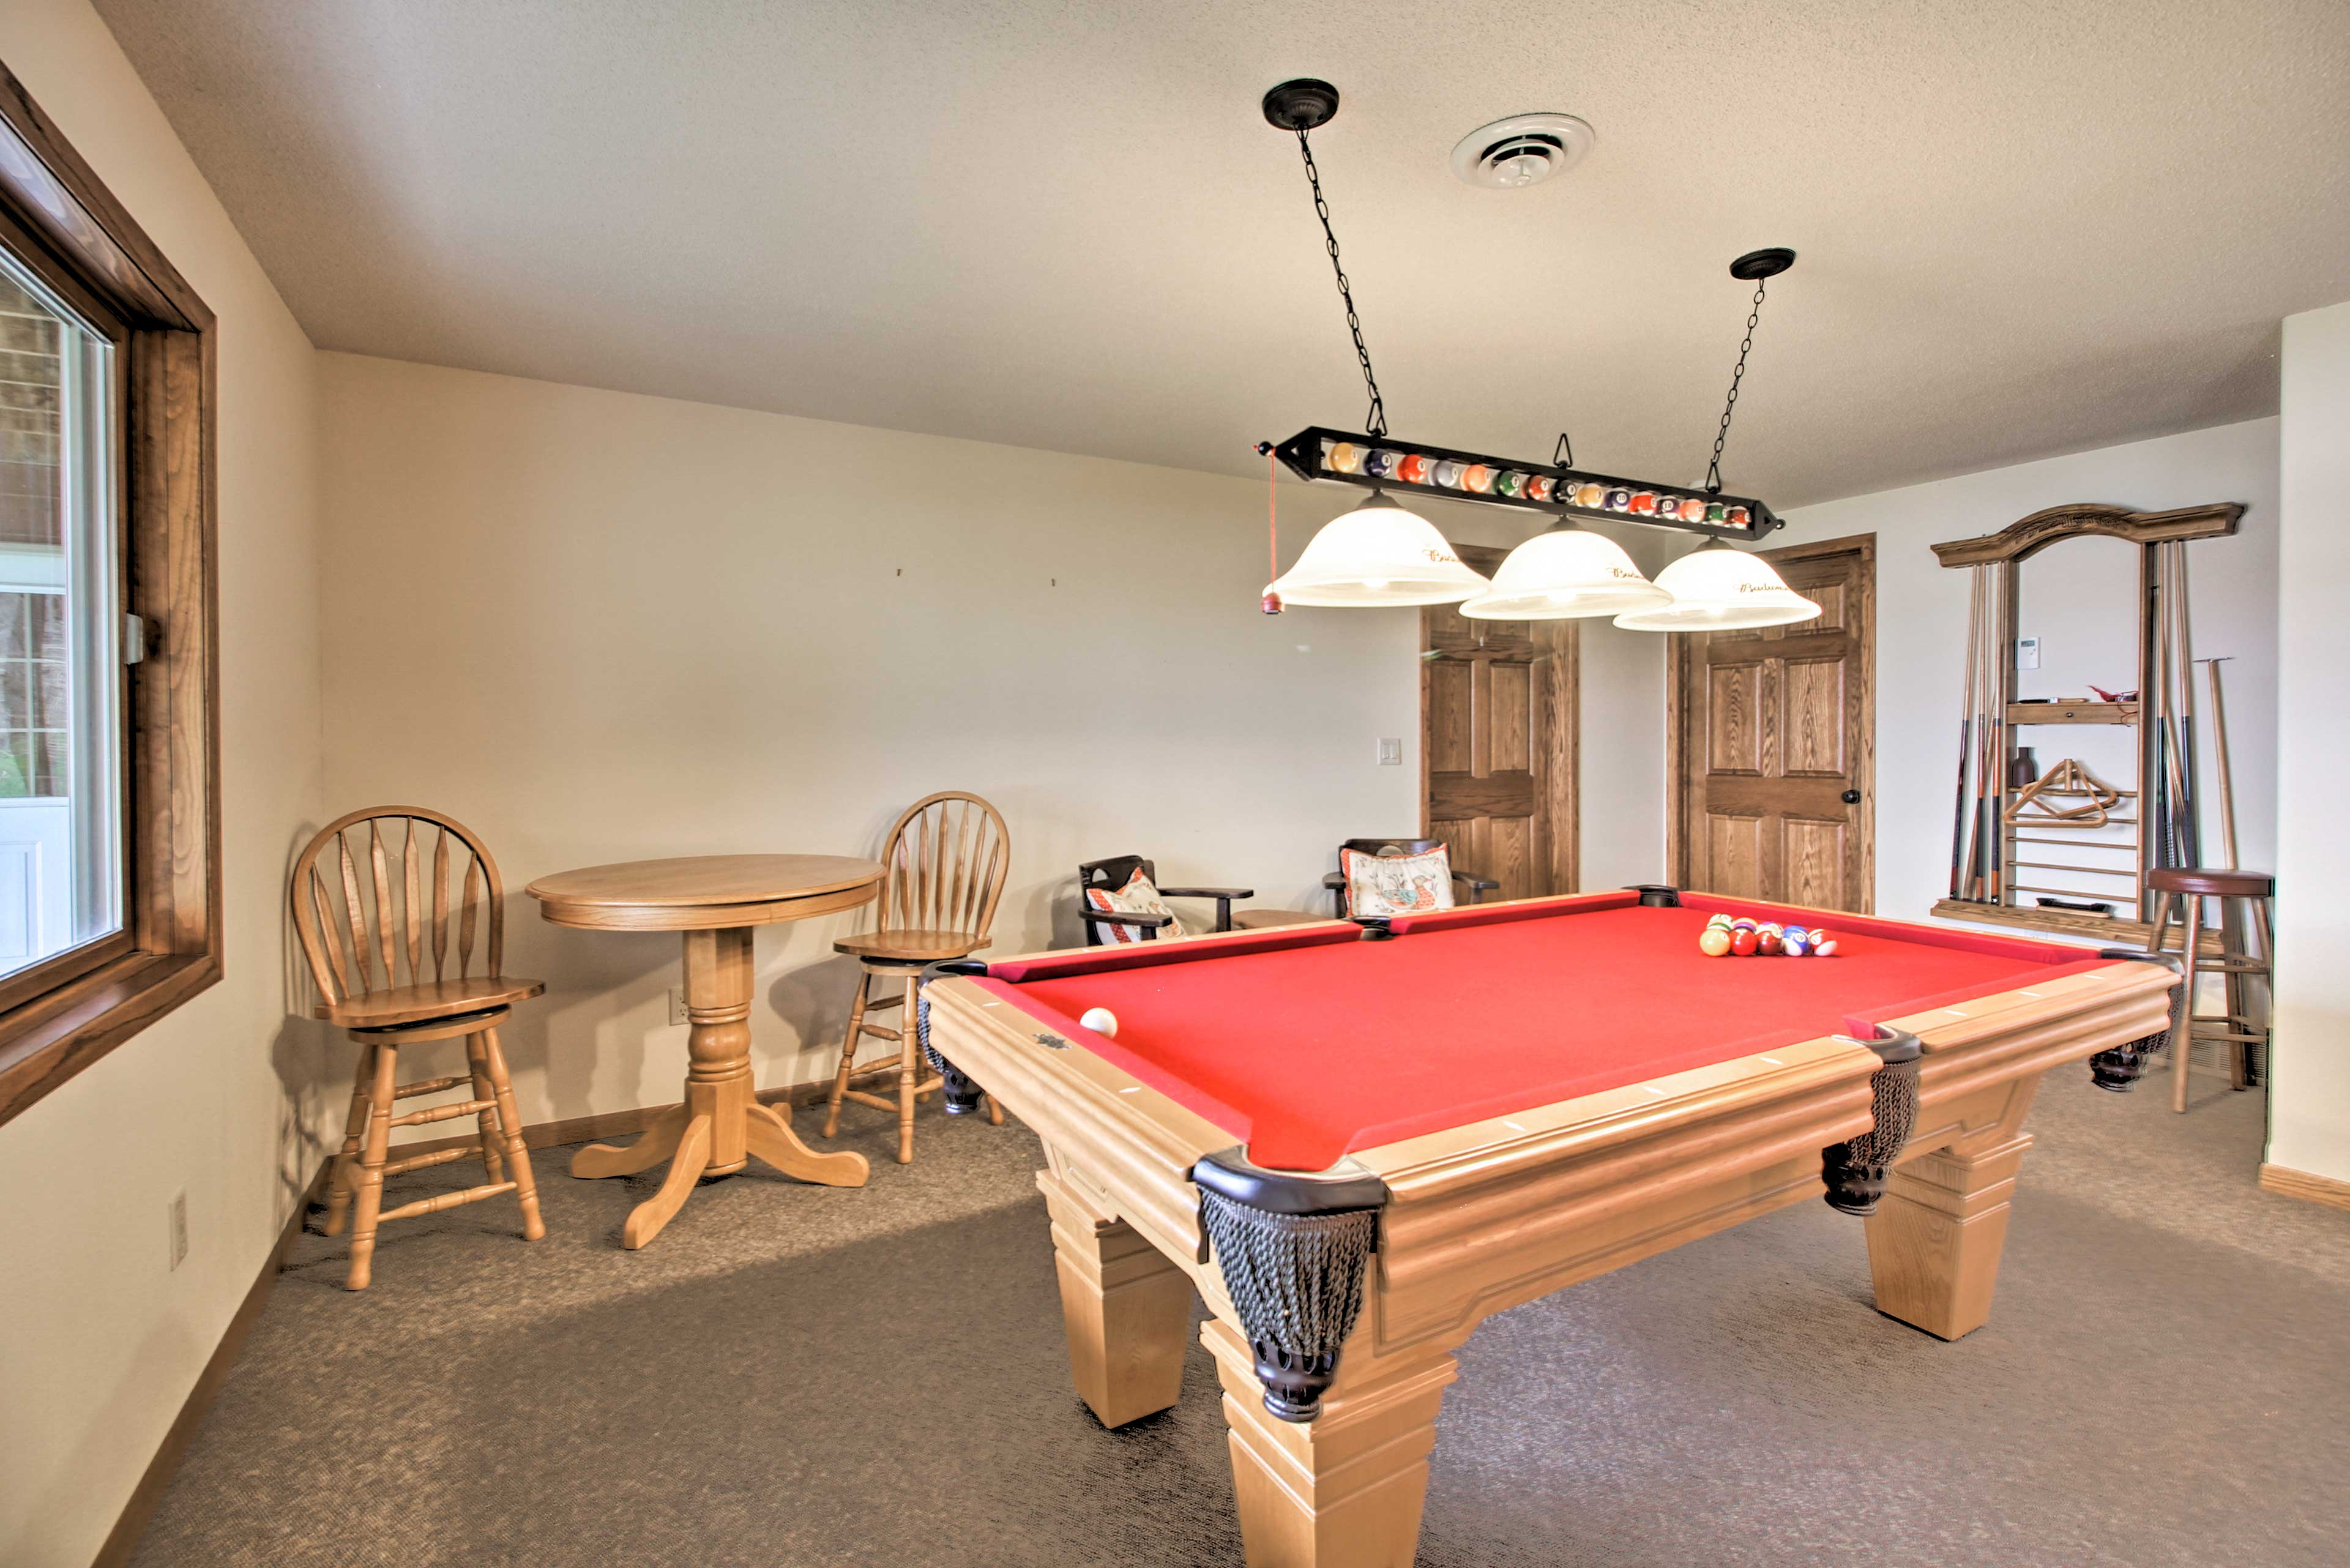 Practice your pool shots at the table in the corner!